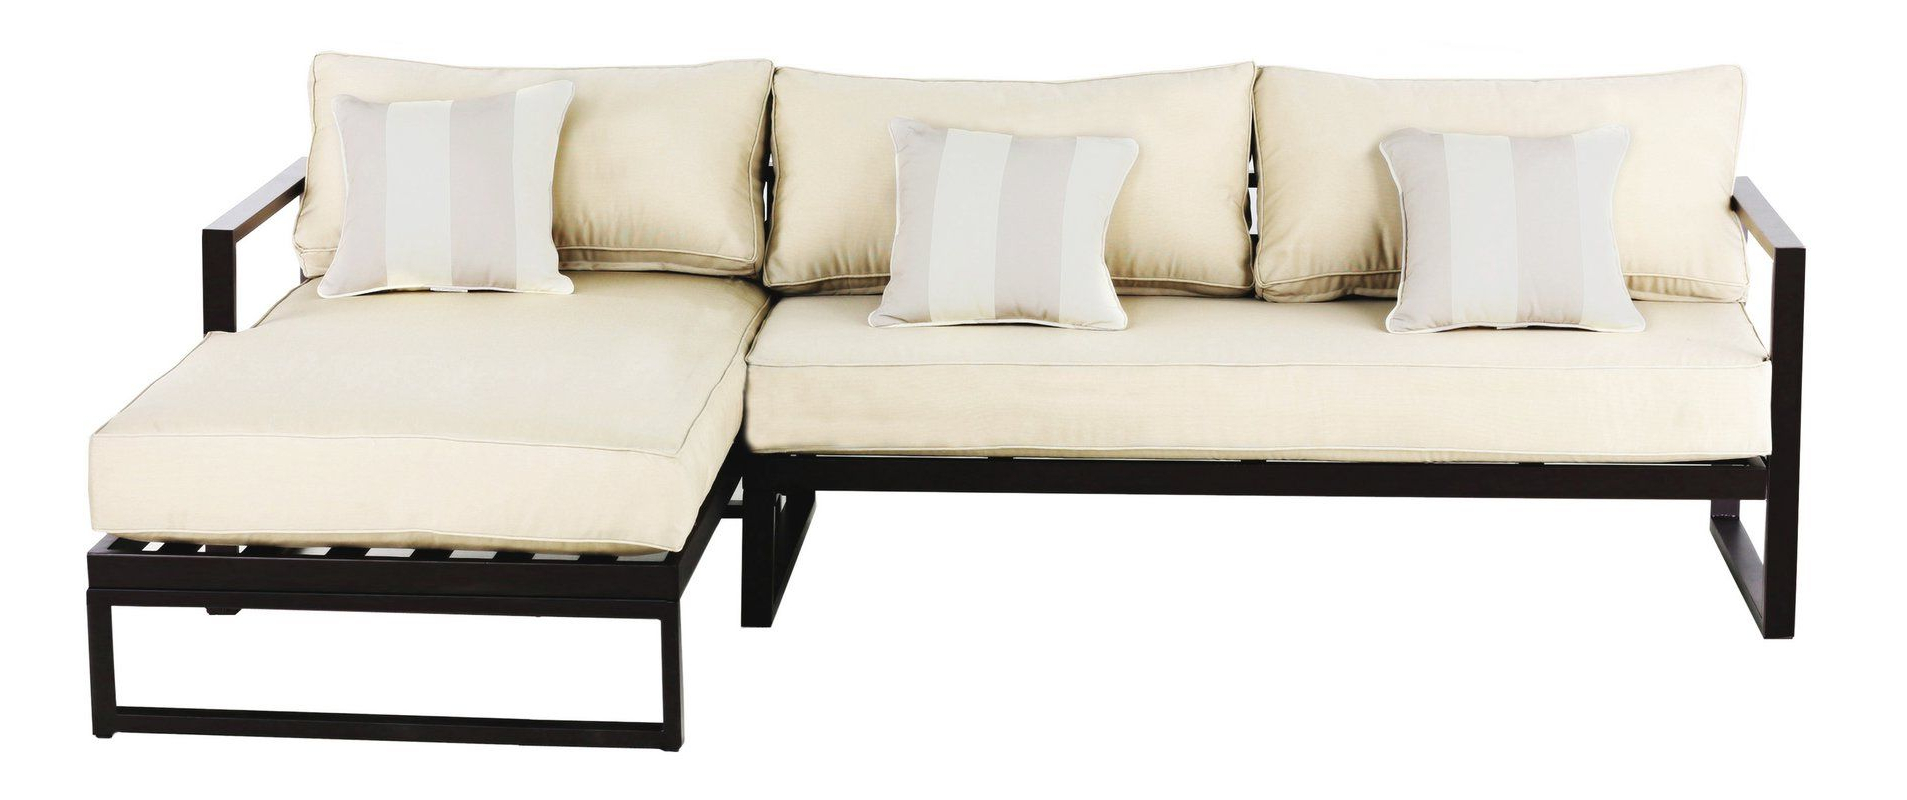 Preferred Catalina Outdoor Sofas With Cushions For Catalina Outdoor Right Arm Sectional Piece With Cushions (View 9 of 11)